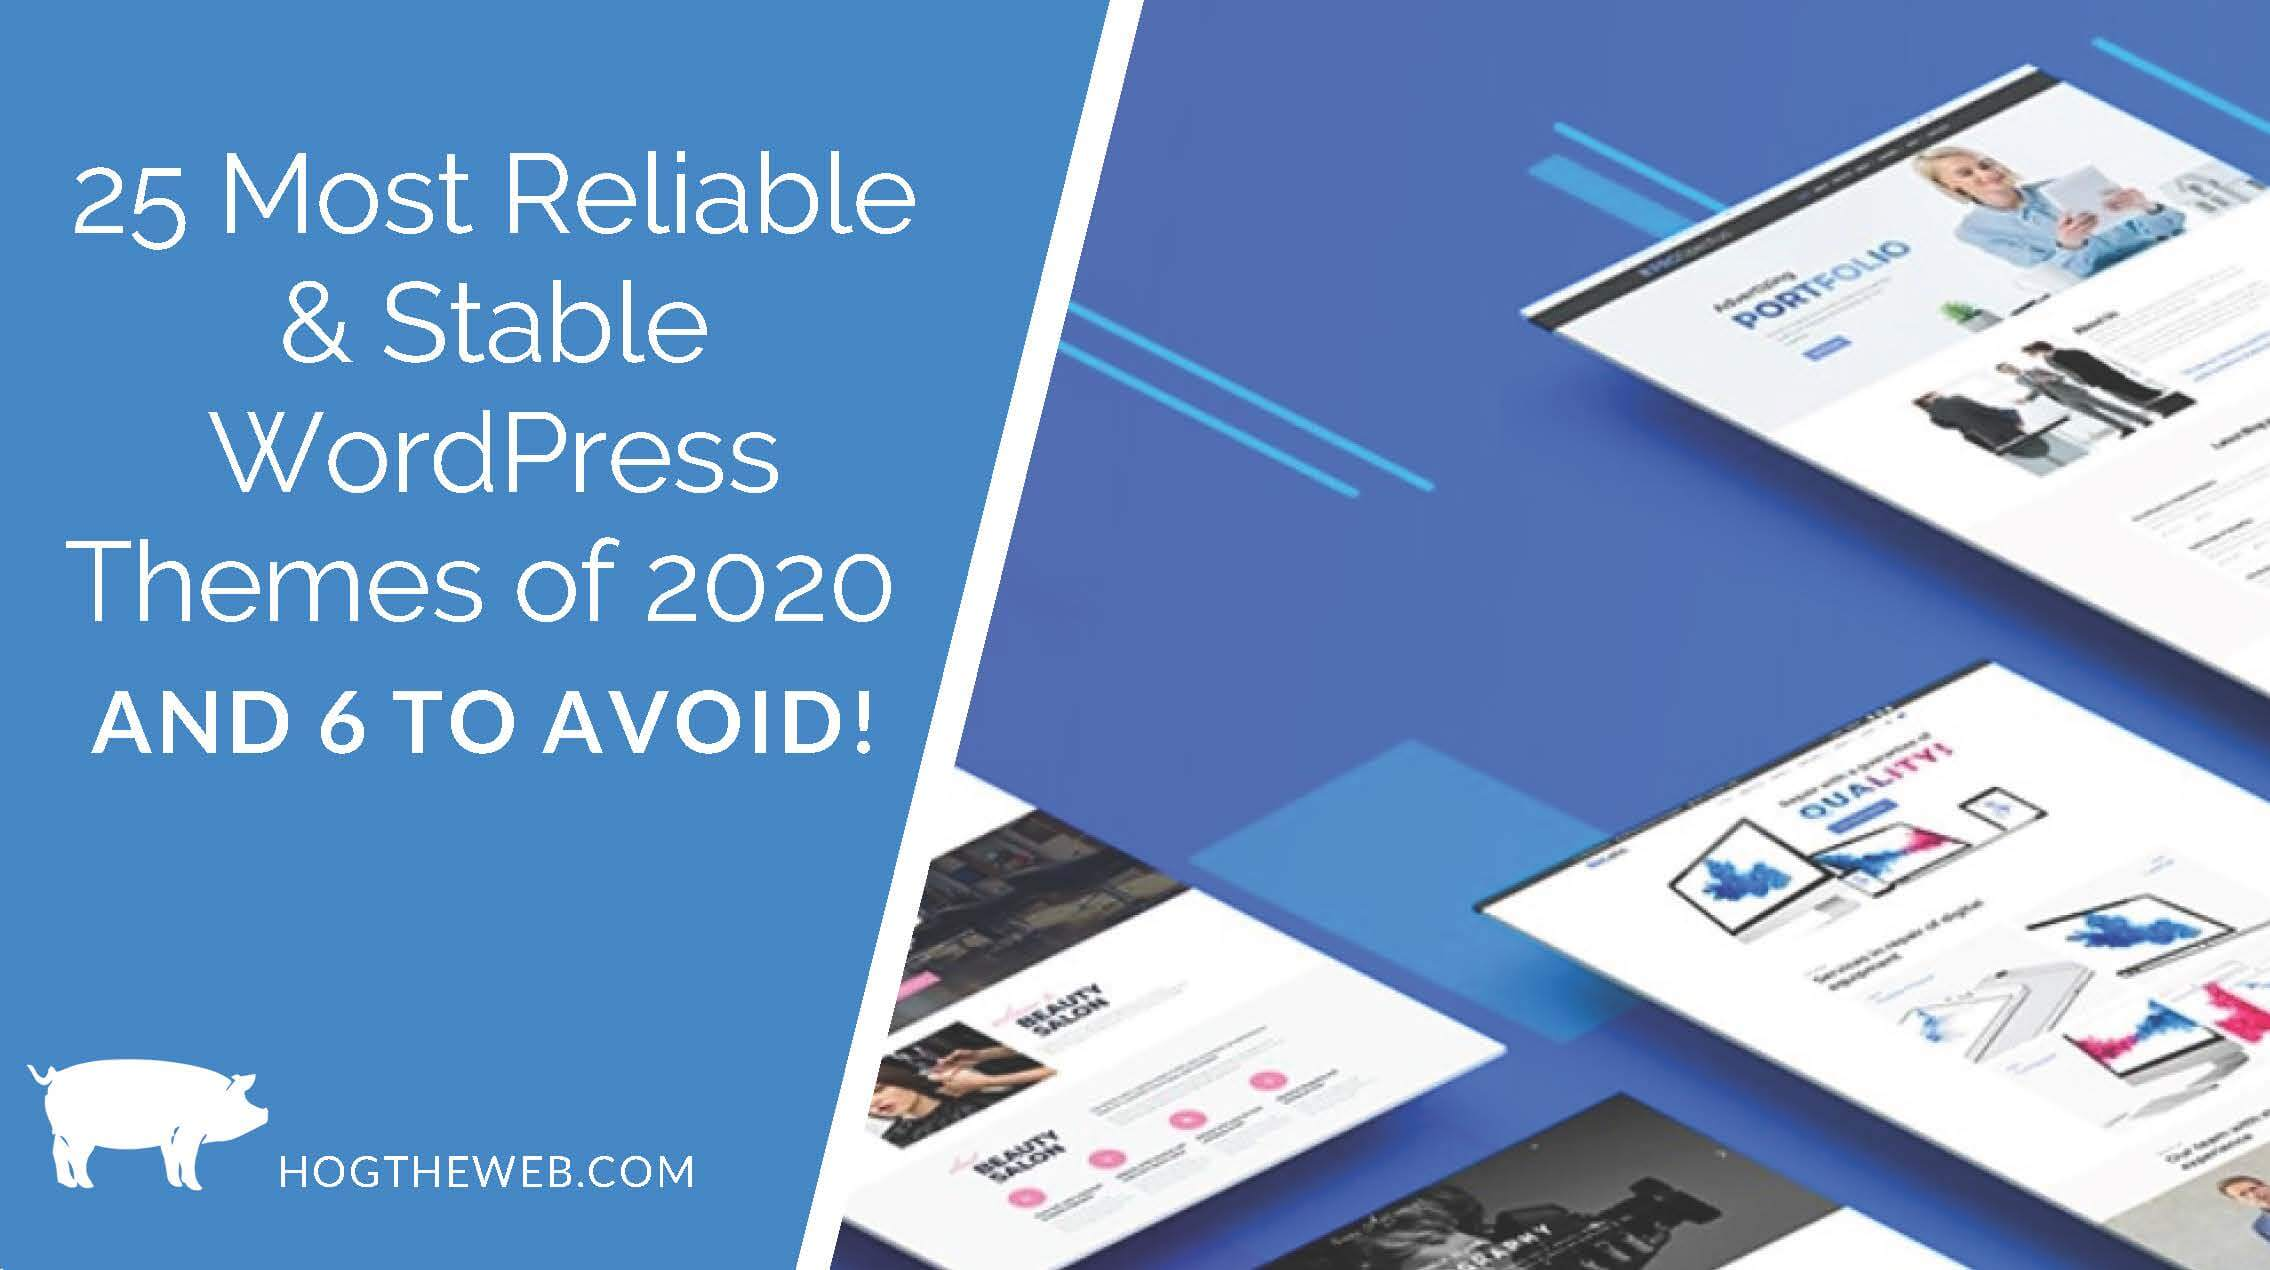 25 Most Stable & Reliable WordPress Themes of 2020(and 6 to Avoid!)